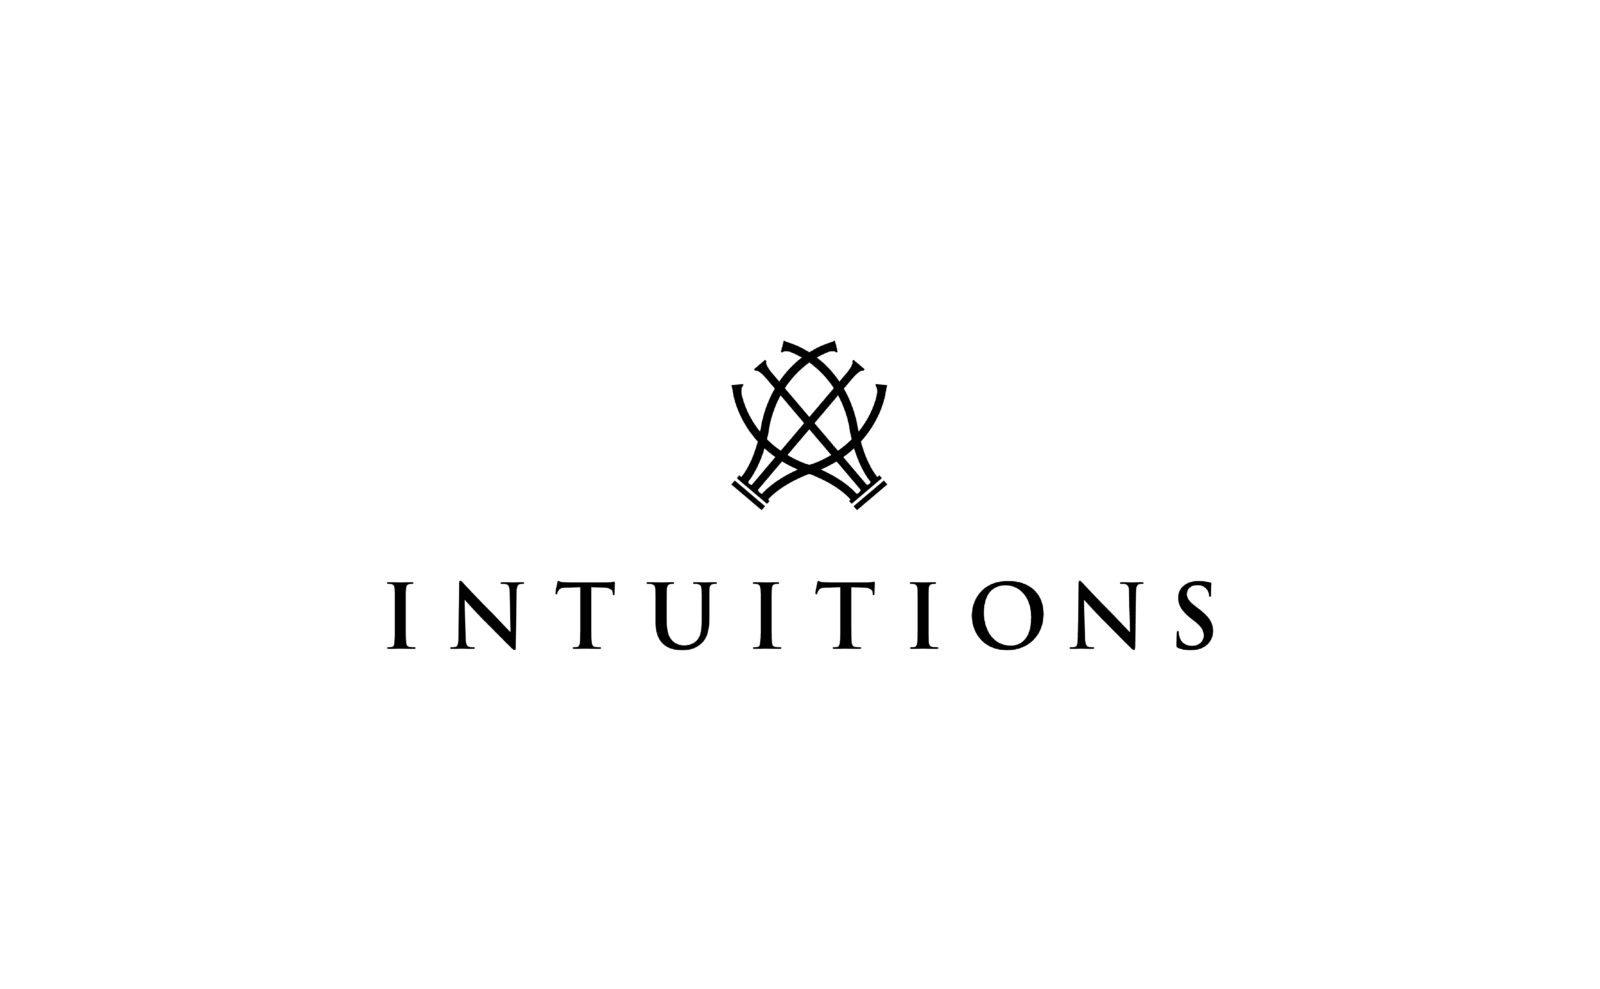 INTUITIONS__-7